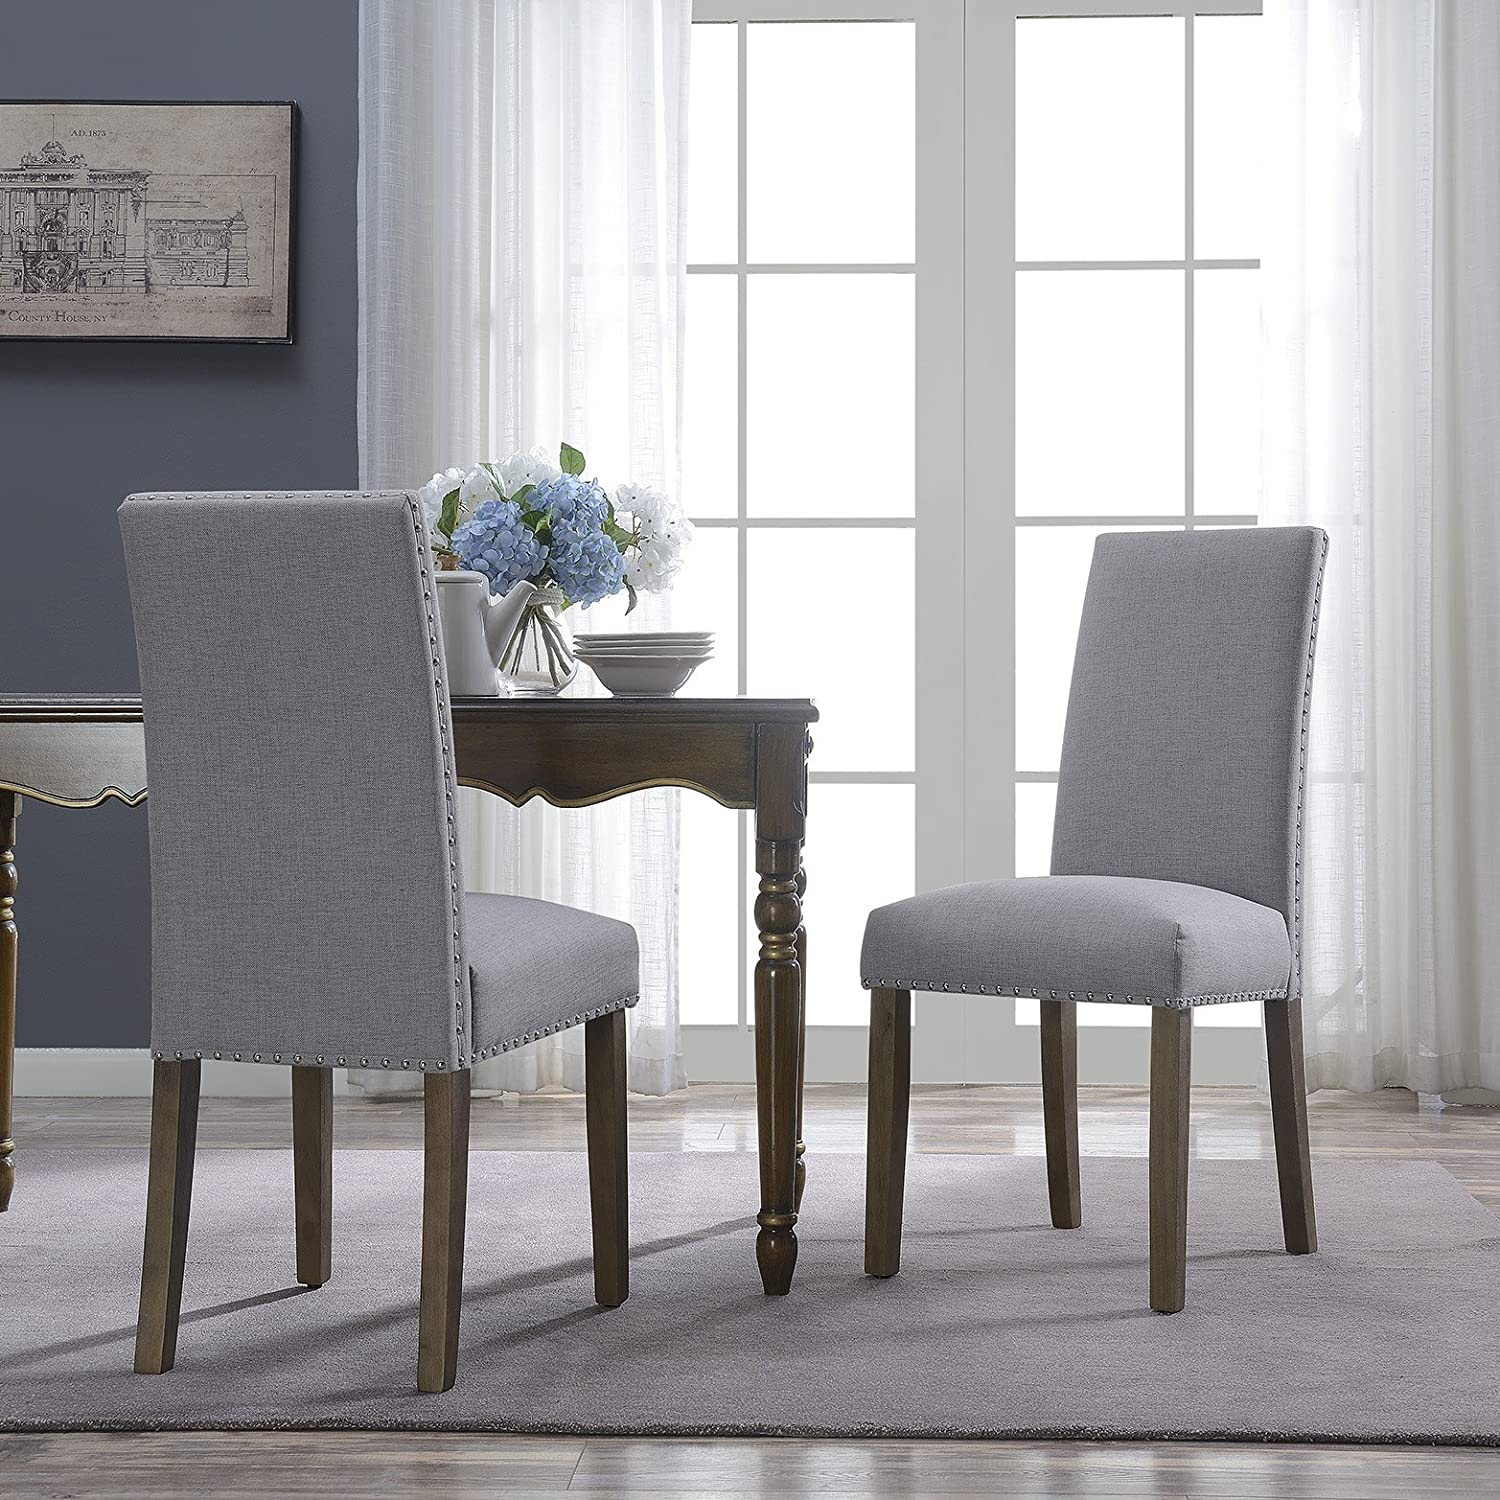 Belleze Set of 2 Dining Chairs Linen Seat Cushion Nailhead Trim Accent Elegant Side Chair Wooden Leg, Gray